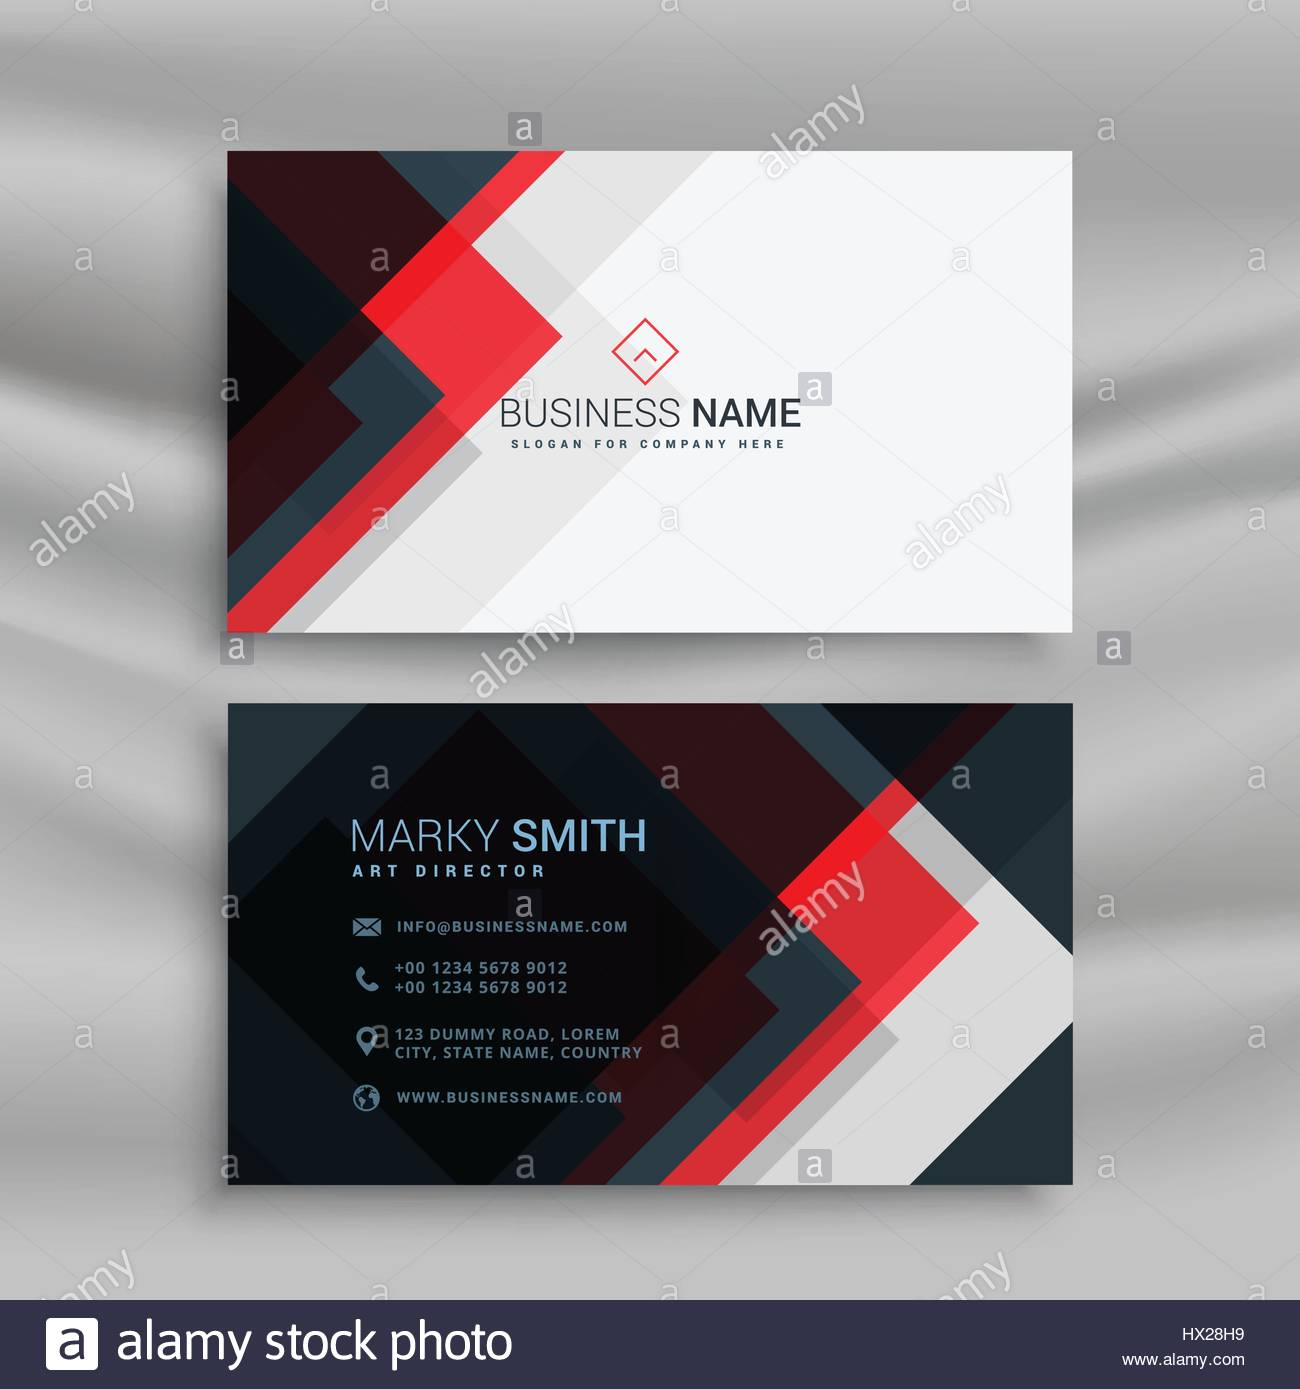 Vector red and black creative business card template design stock vector red and black creative business card template design friedricerecipe Gallery